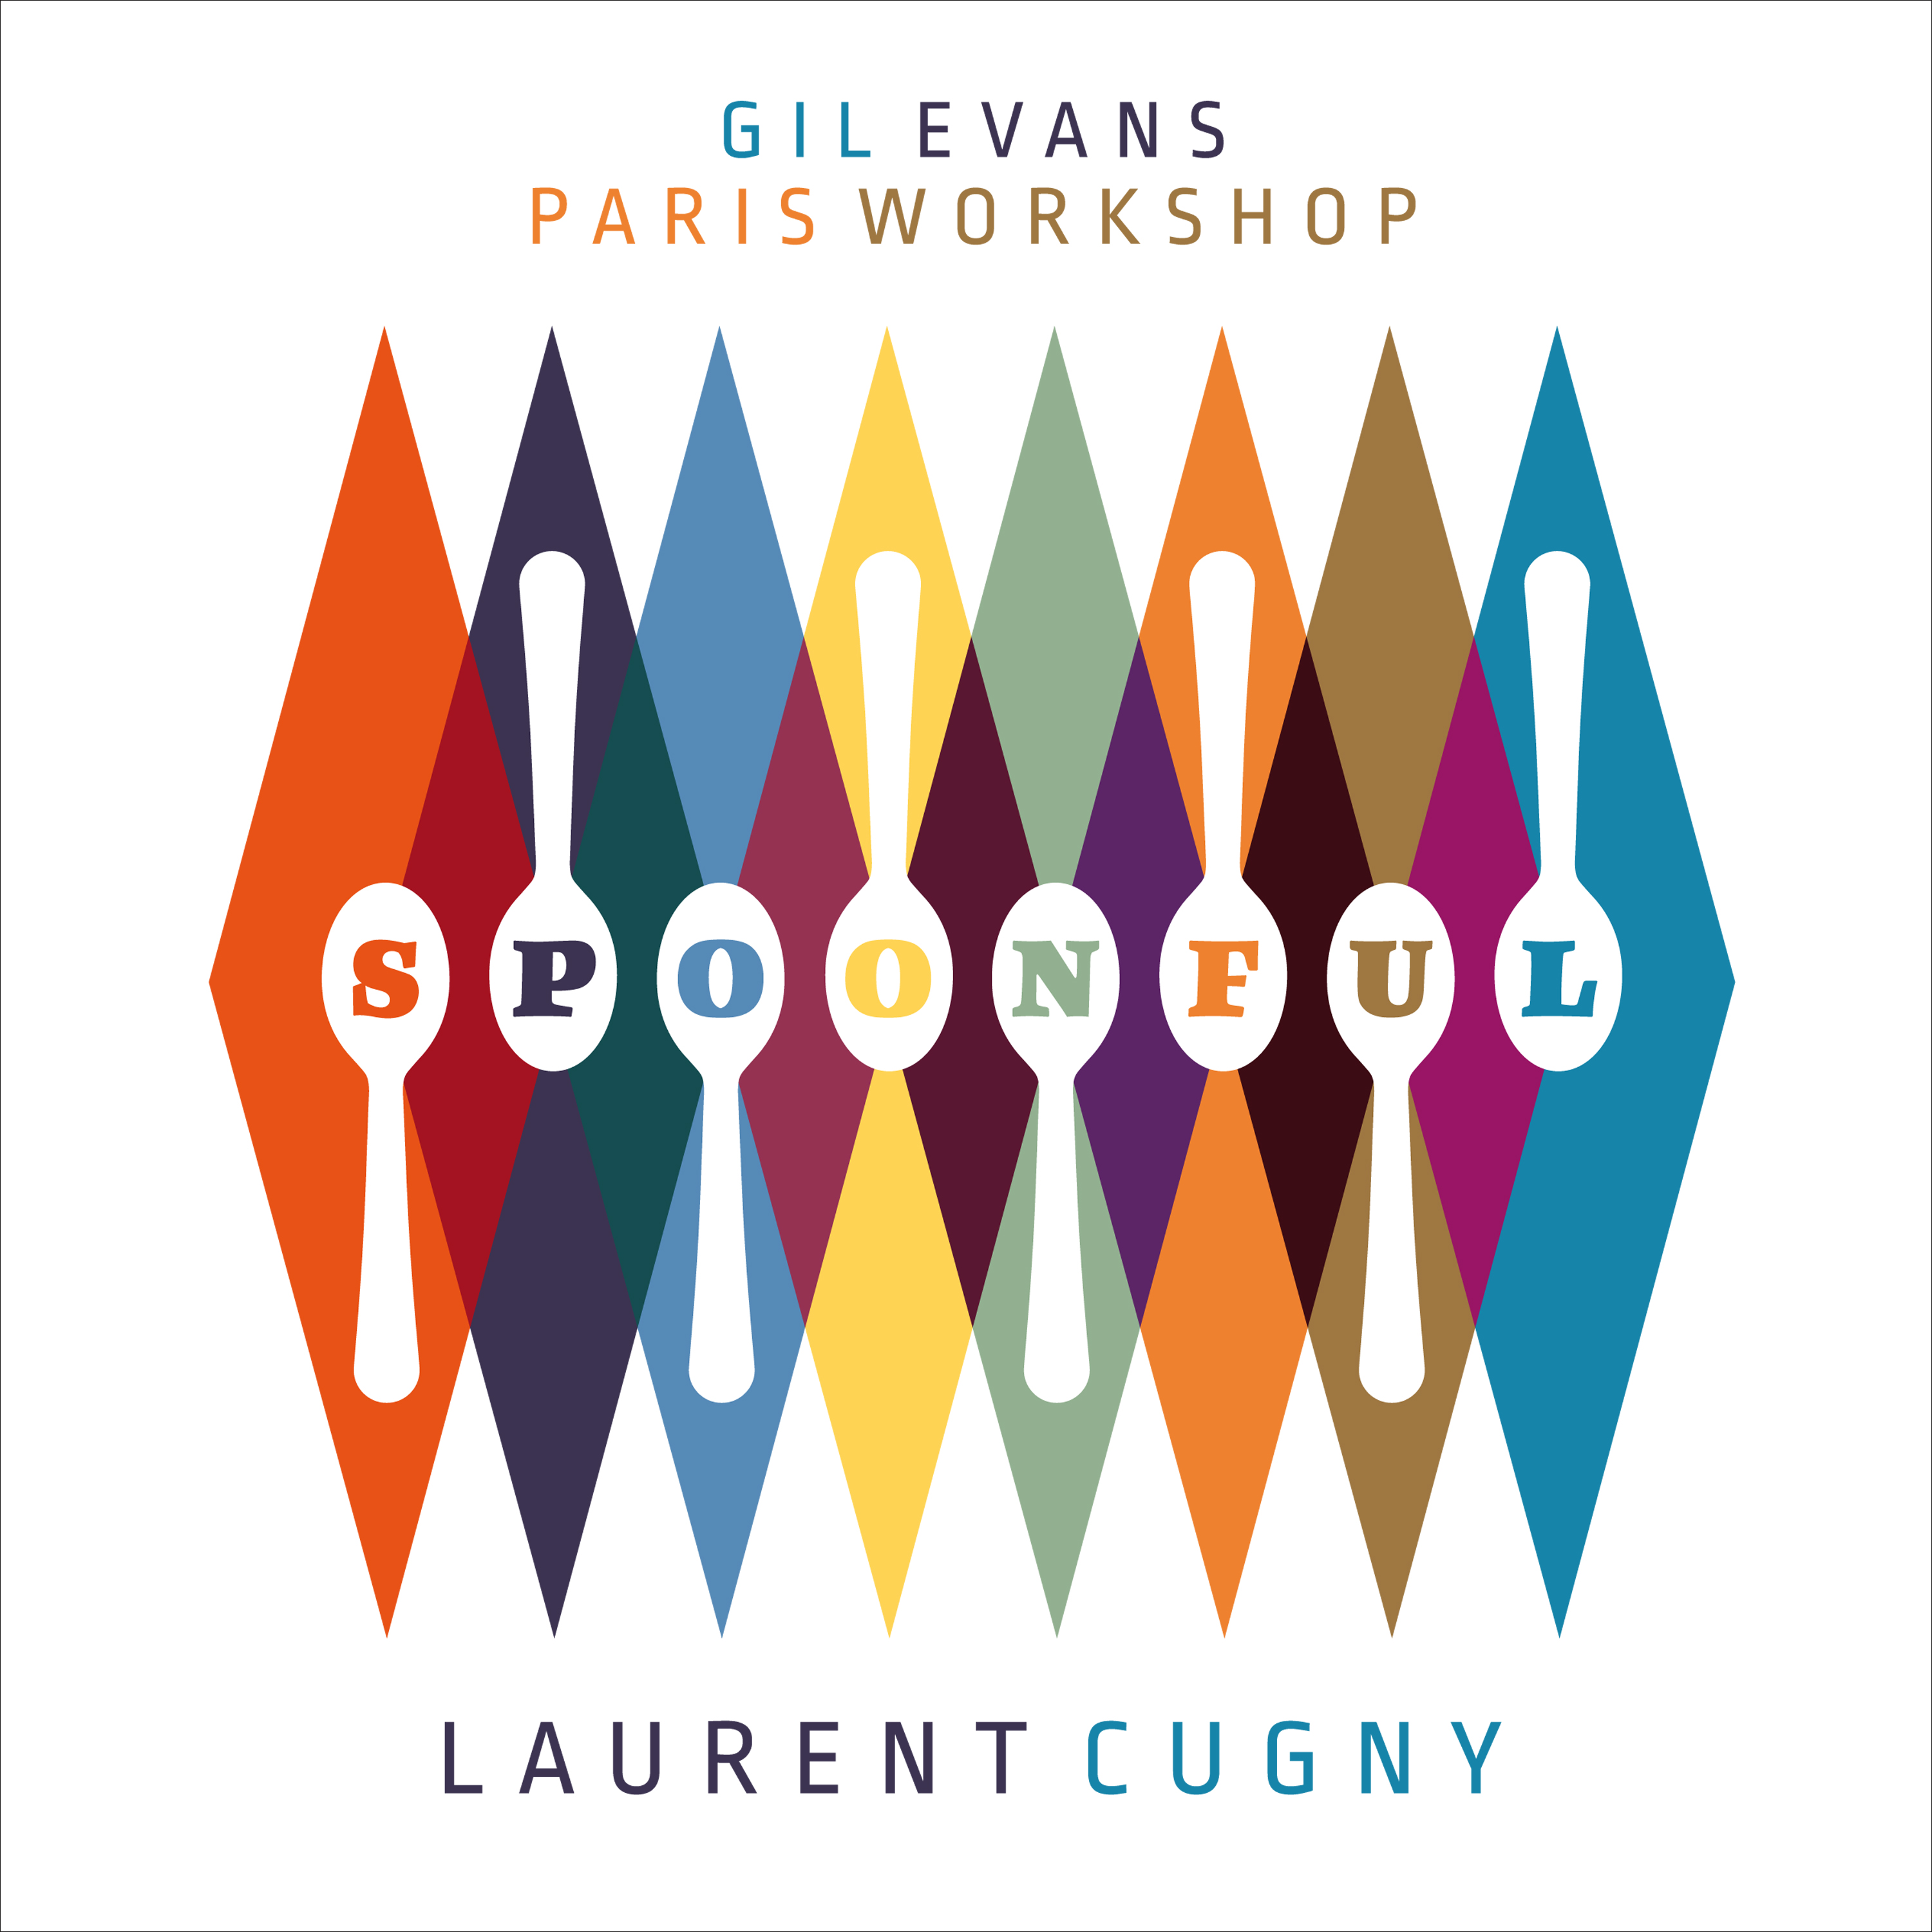 Gil Evans Paris Workshop Laurent Cugny Spoonful